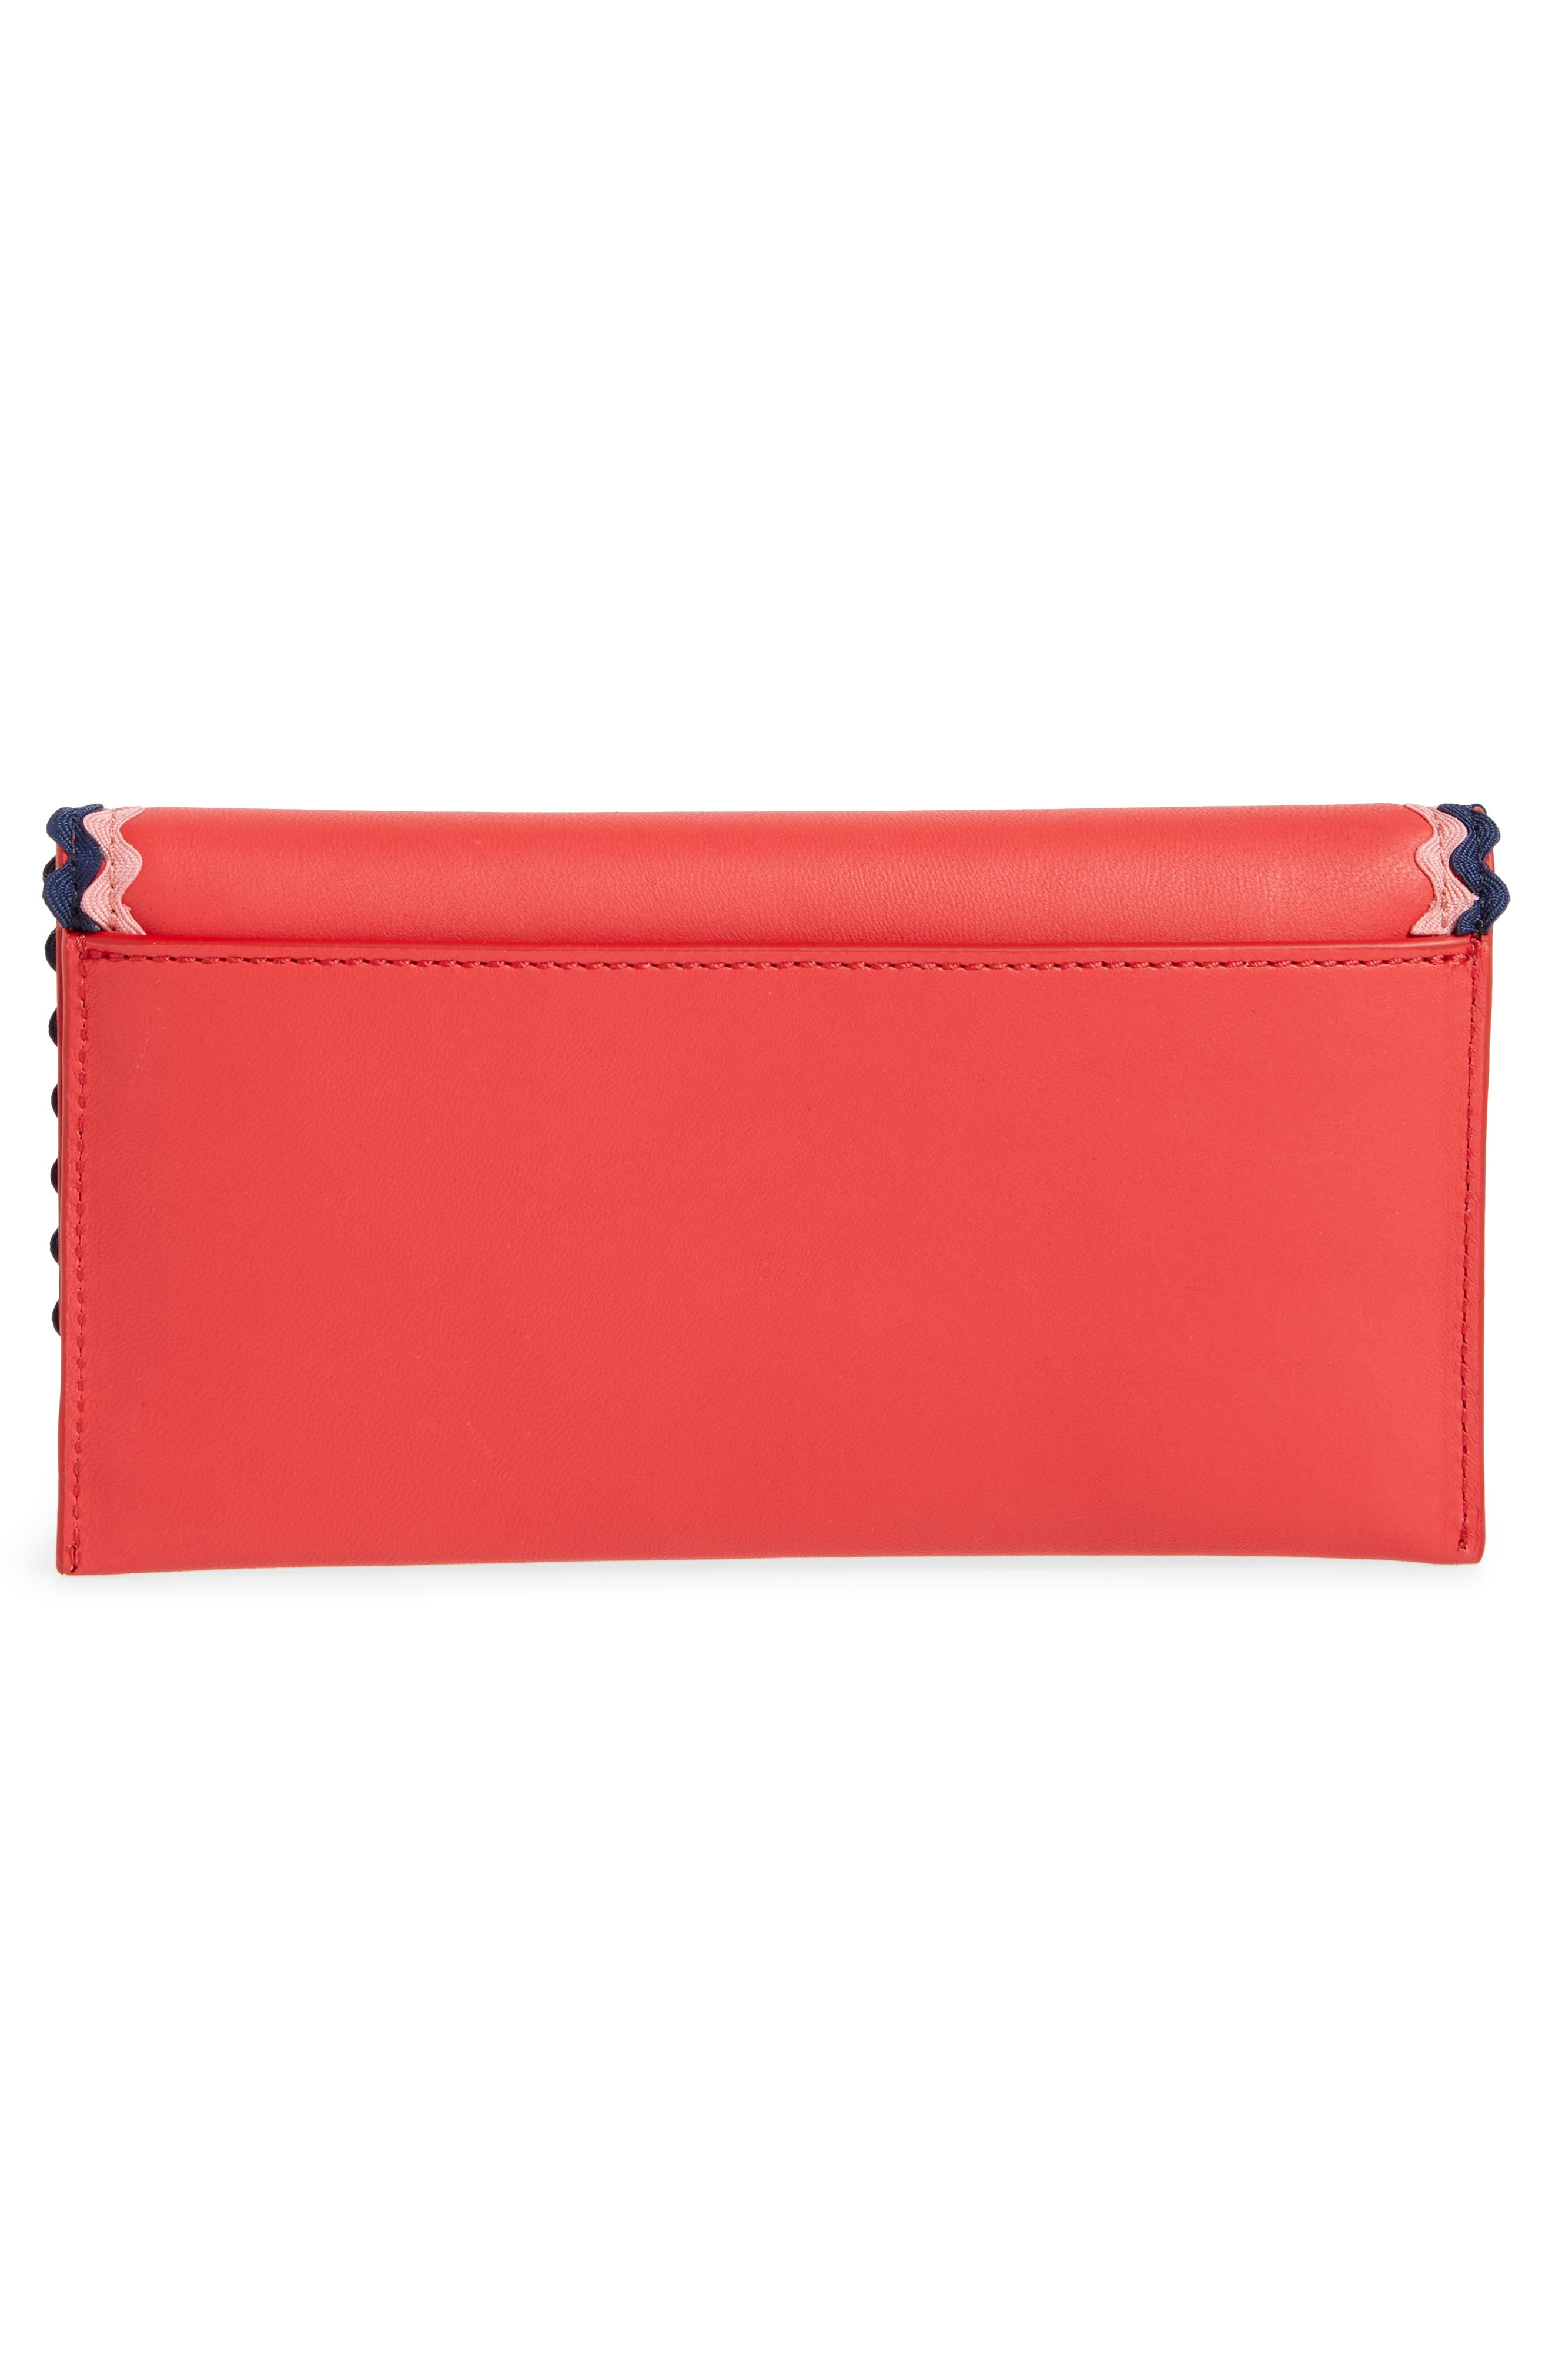 Everything Embellished Leather Wallet,                             Alternate thumbnail 4, color,                             620